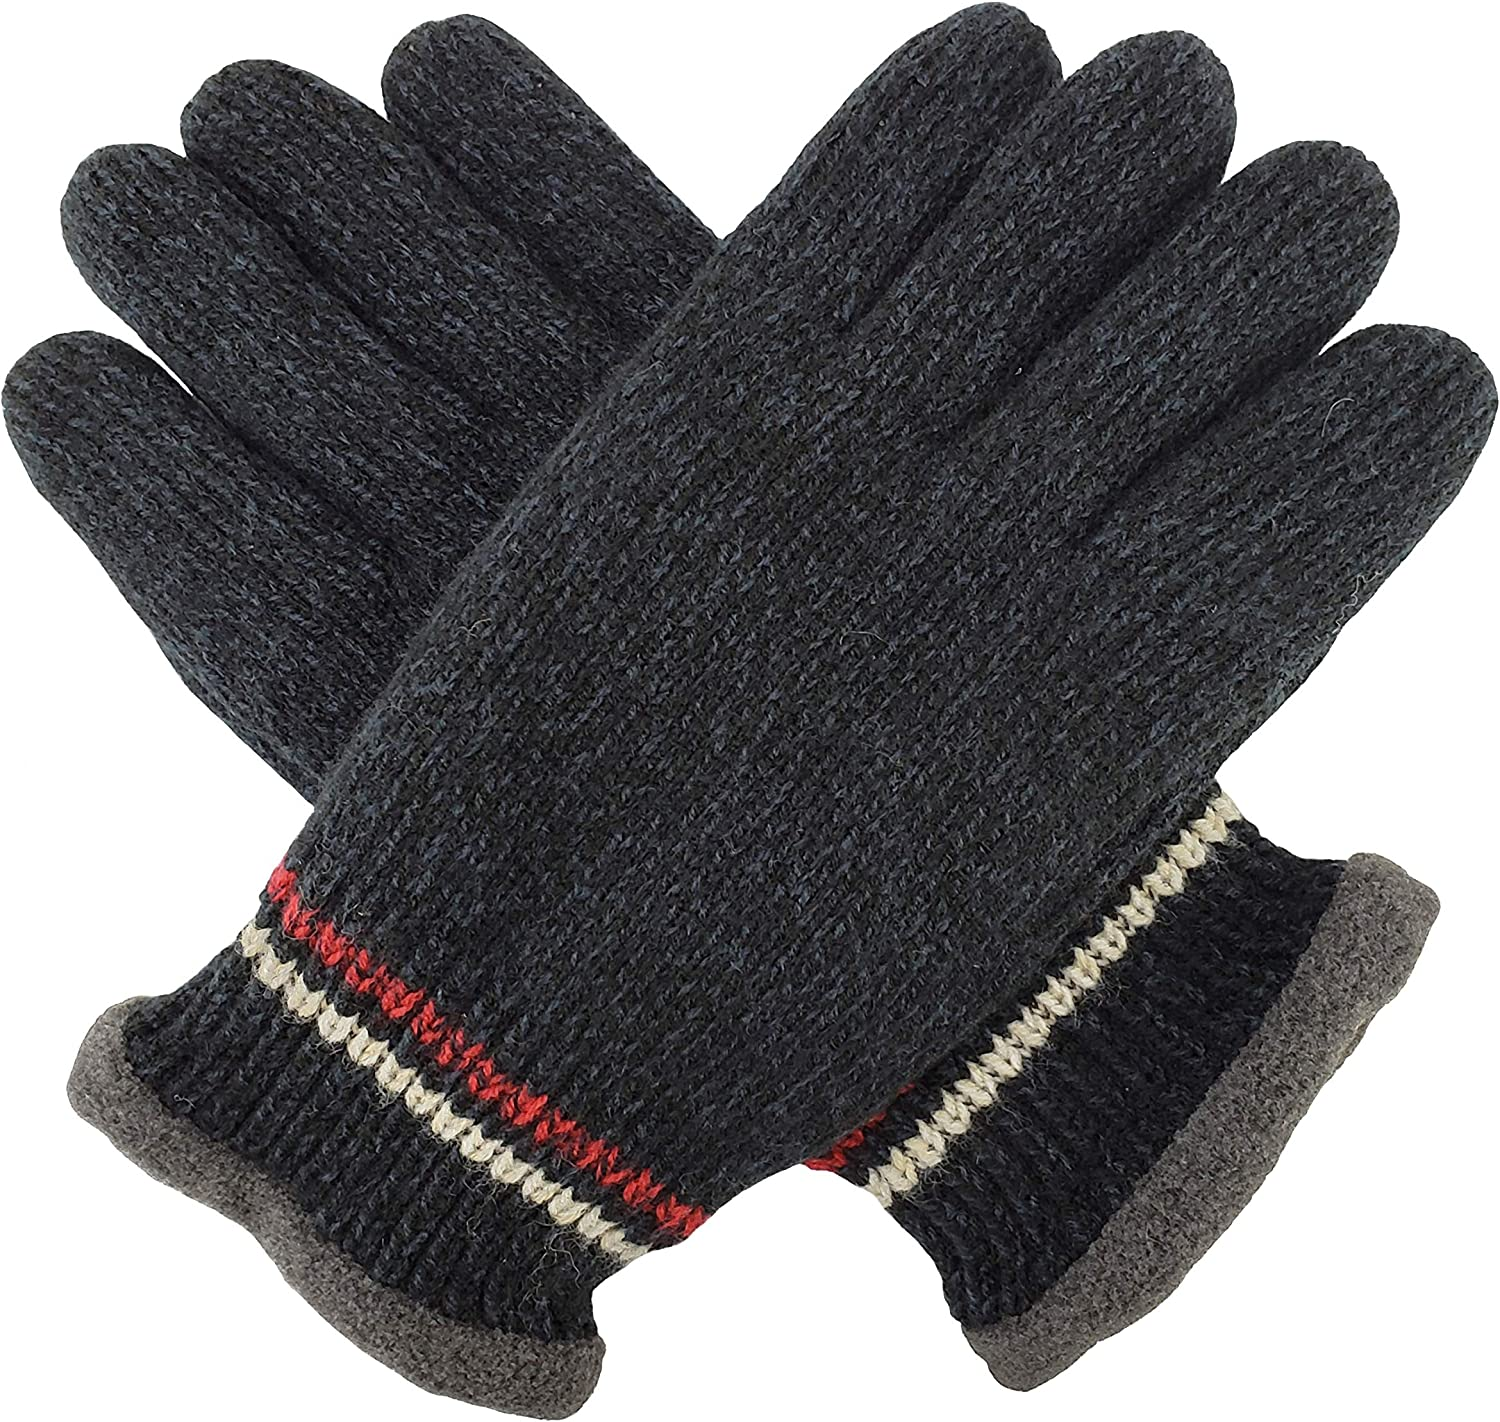 XIAOQIU Gloves Men's Knitted Winter Warm Gloves Fine Wool Lining Mixed Men and Women Outdoor Warm Gloves Mittens (Color : Navy, Gloves Size : T)